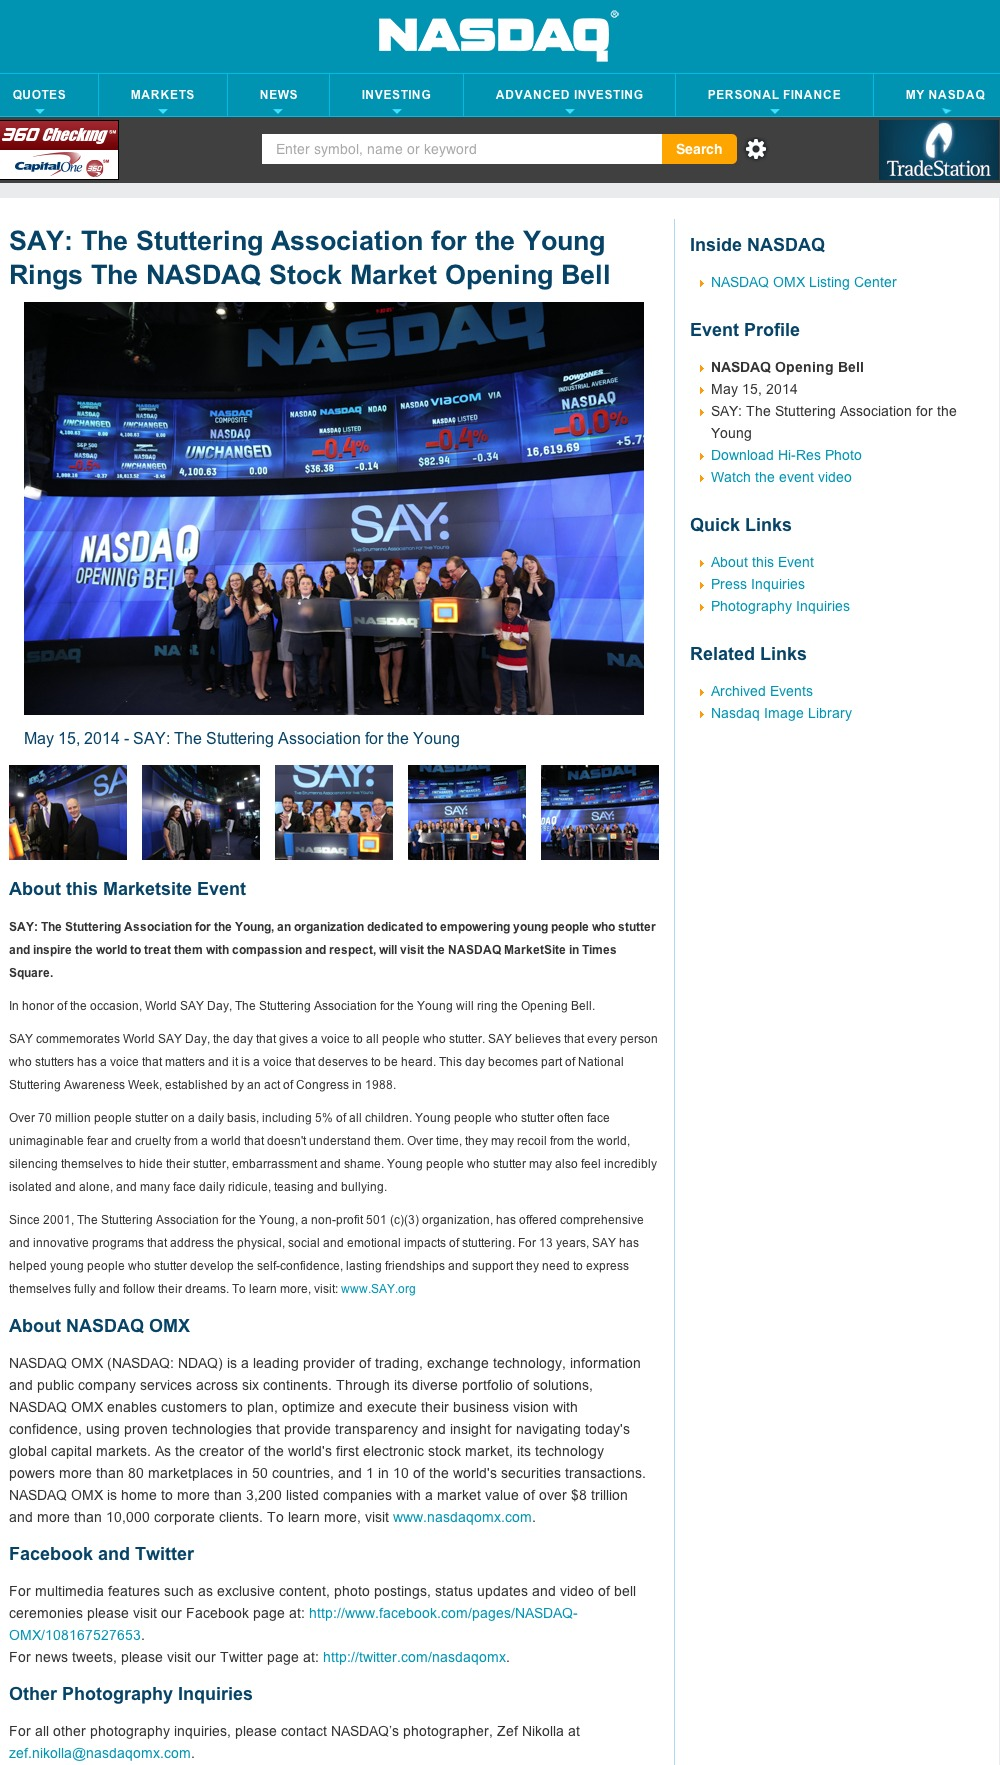 The Stuttering Association for the Young Rings the NASDAQ Stock Market Opening Bell